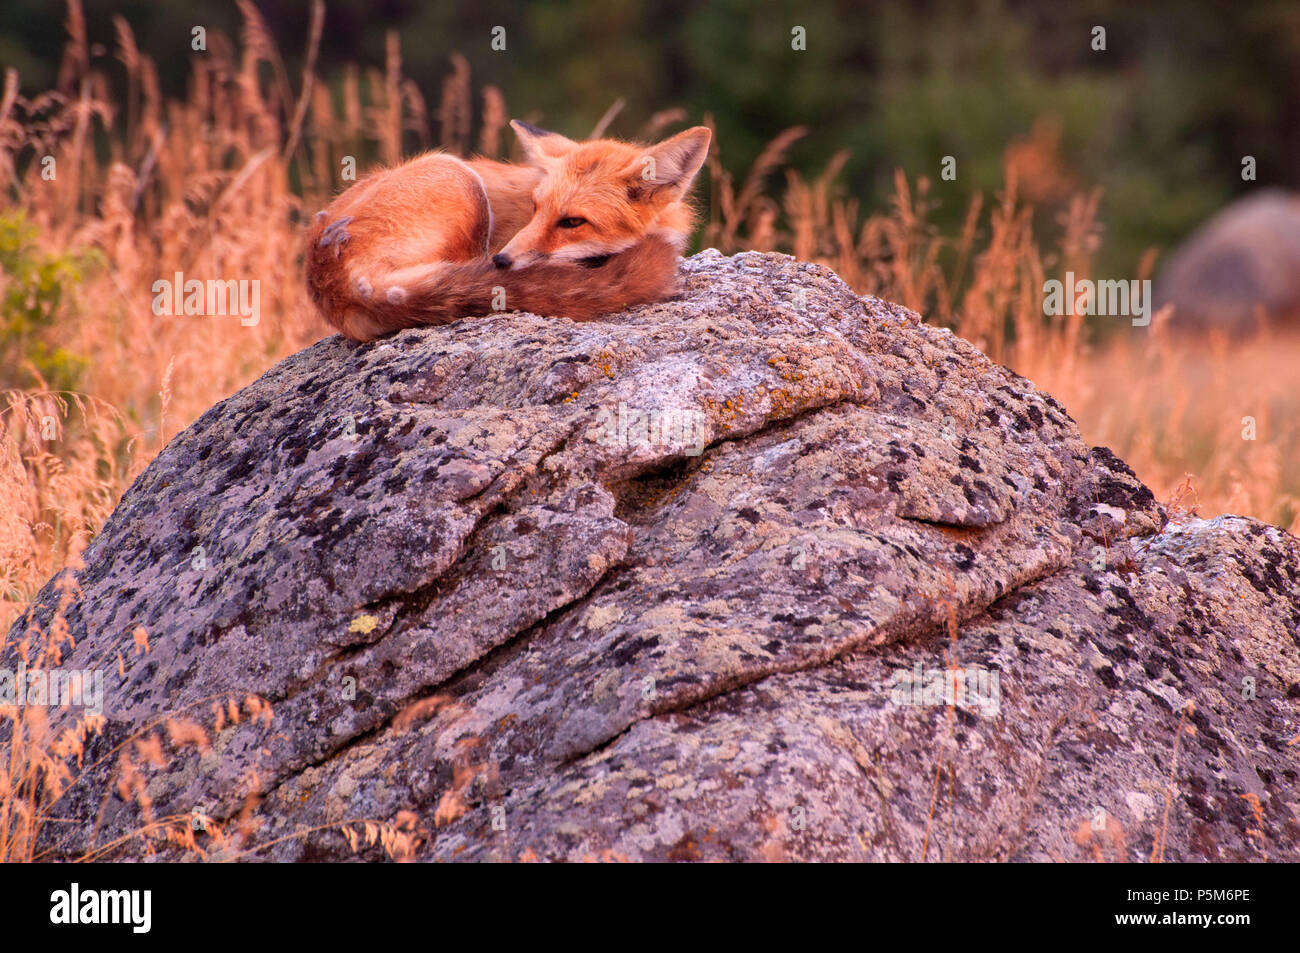 Red fox, Iwetemlaykin State Park, Hells Canyon National Scenic Byway, Oregon - Stock Image